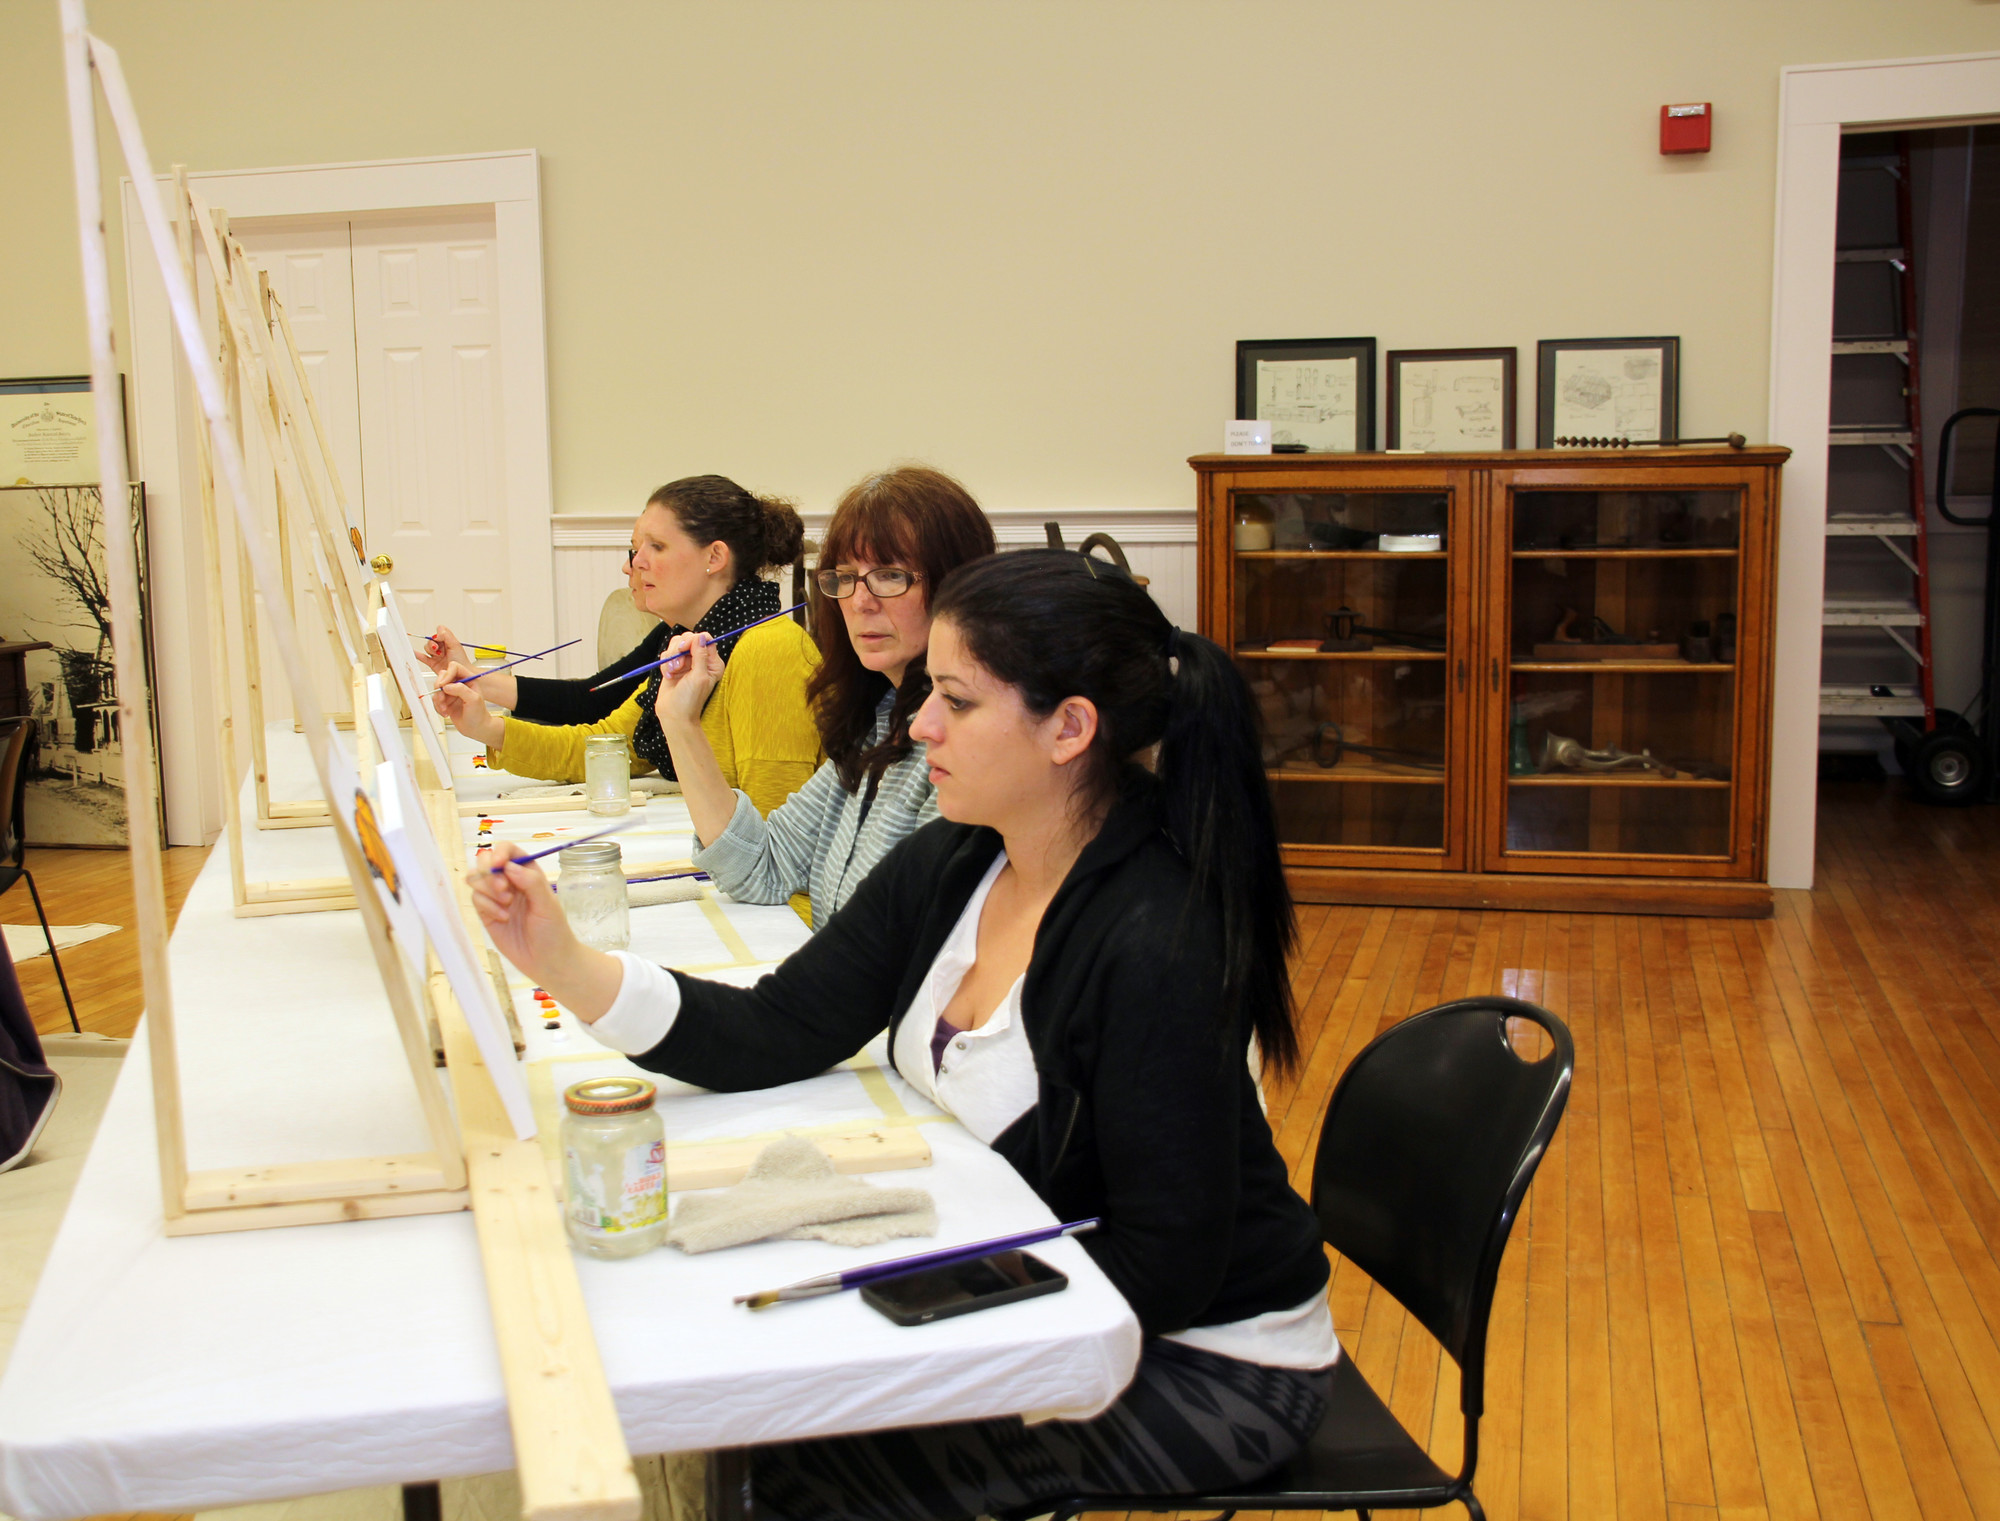 Jillian Pelliccia, foreground, Cindy Schaaf and Meghan Schaaf focused on their paintings.